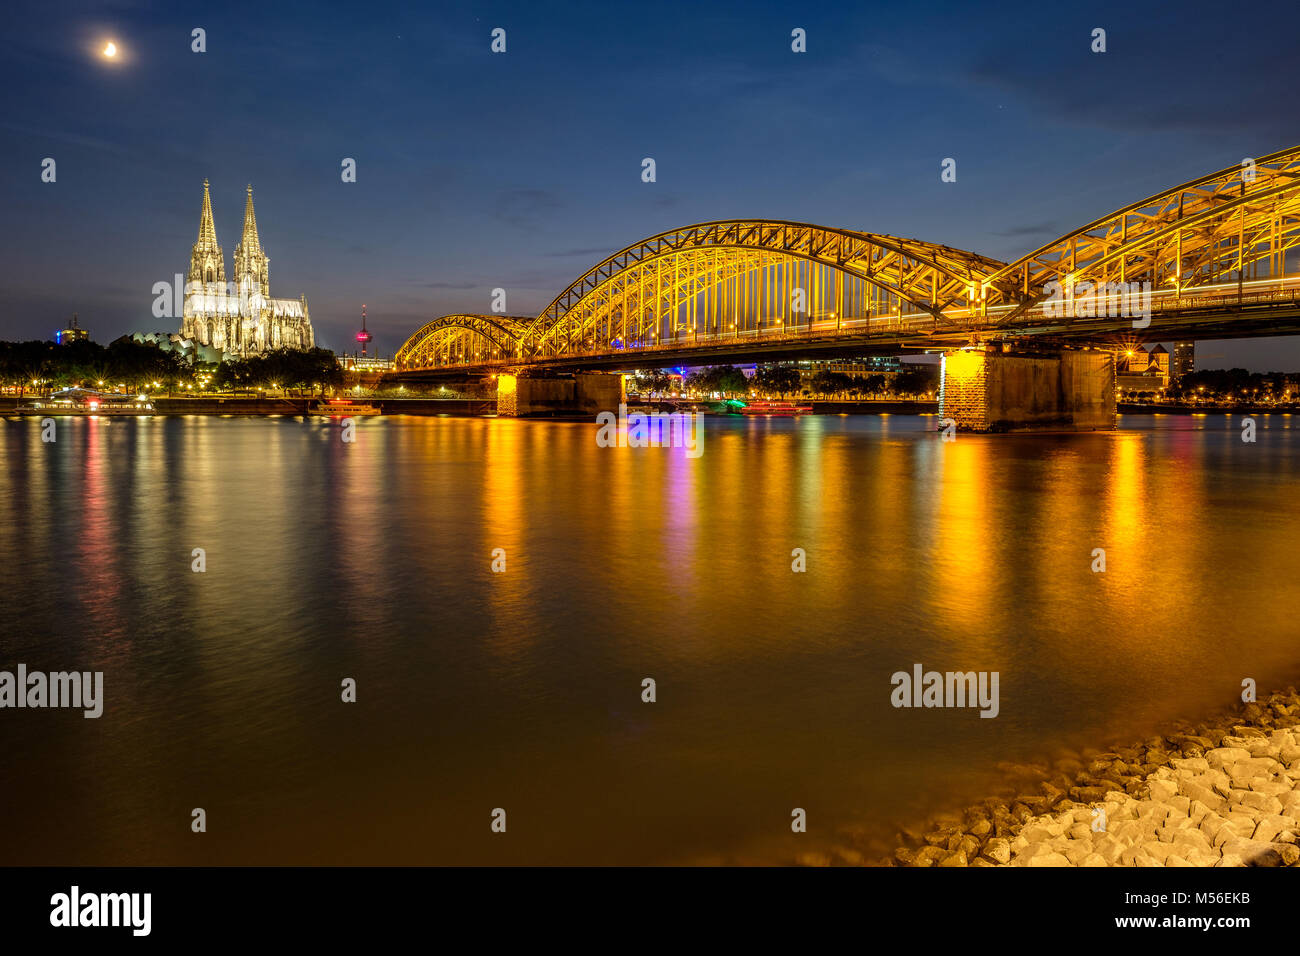 Cologne Cathedral and Hohenzollern Bridge at night, Germany - Stock Image